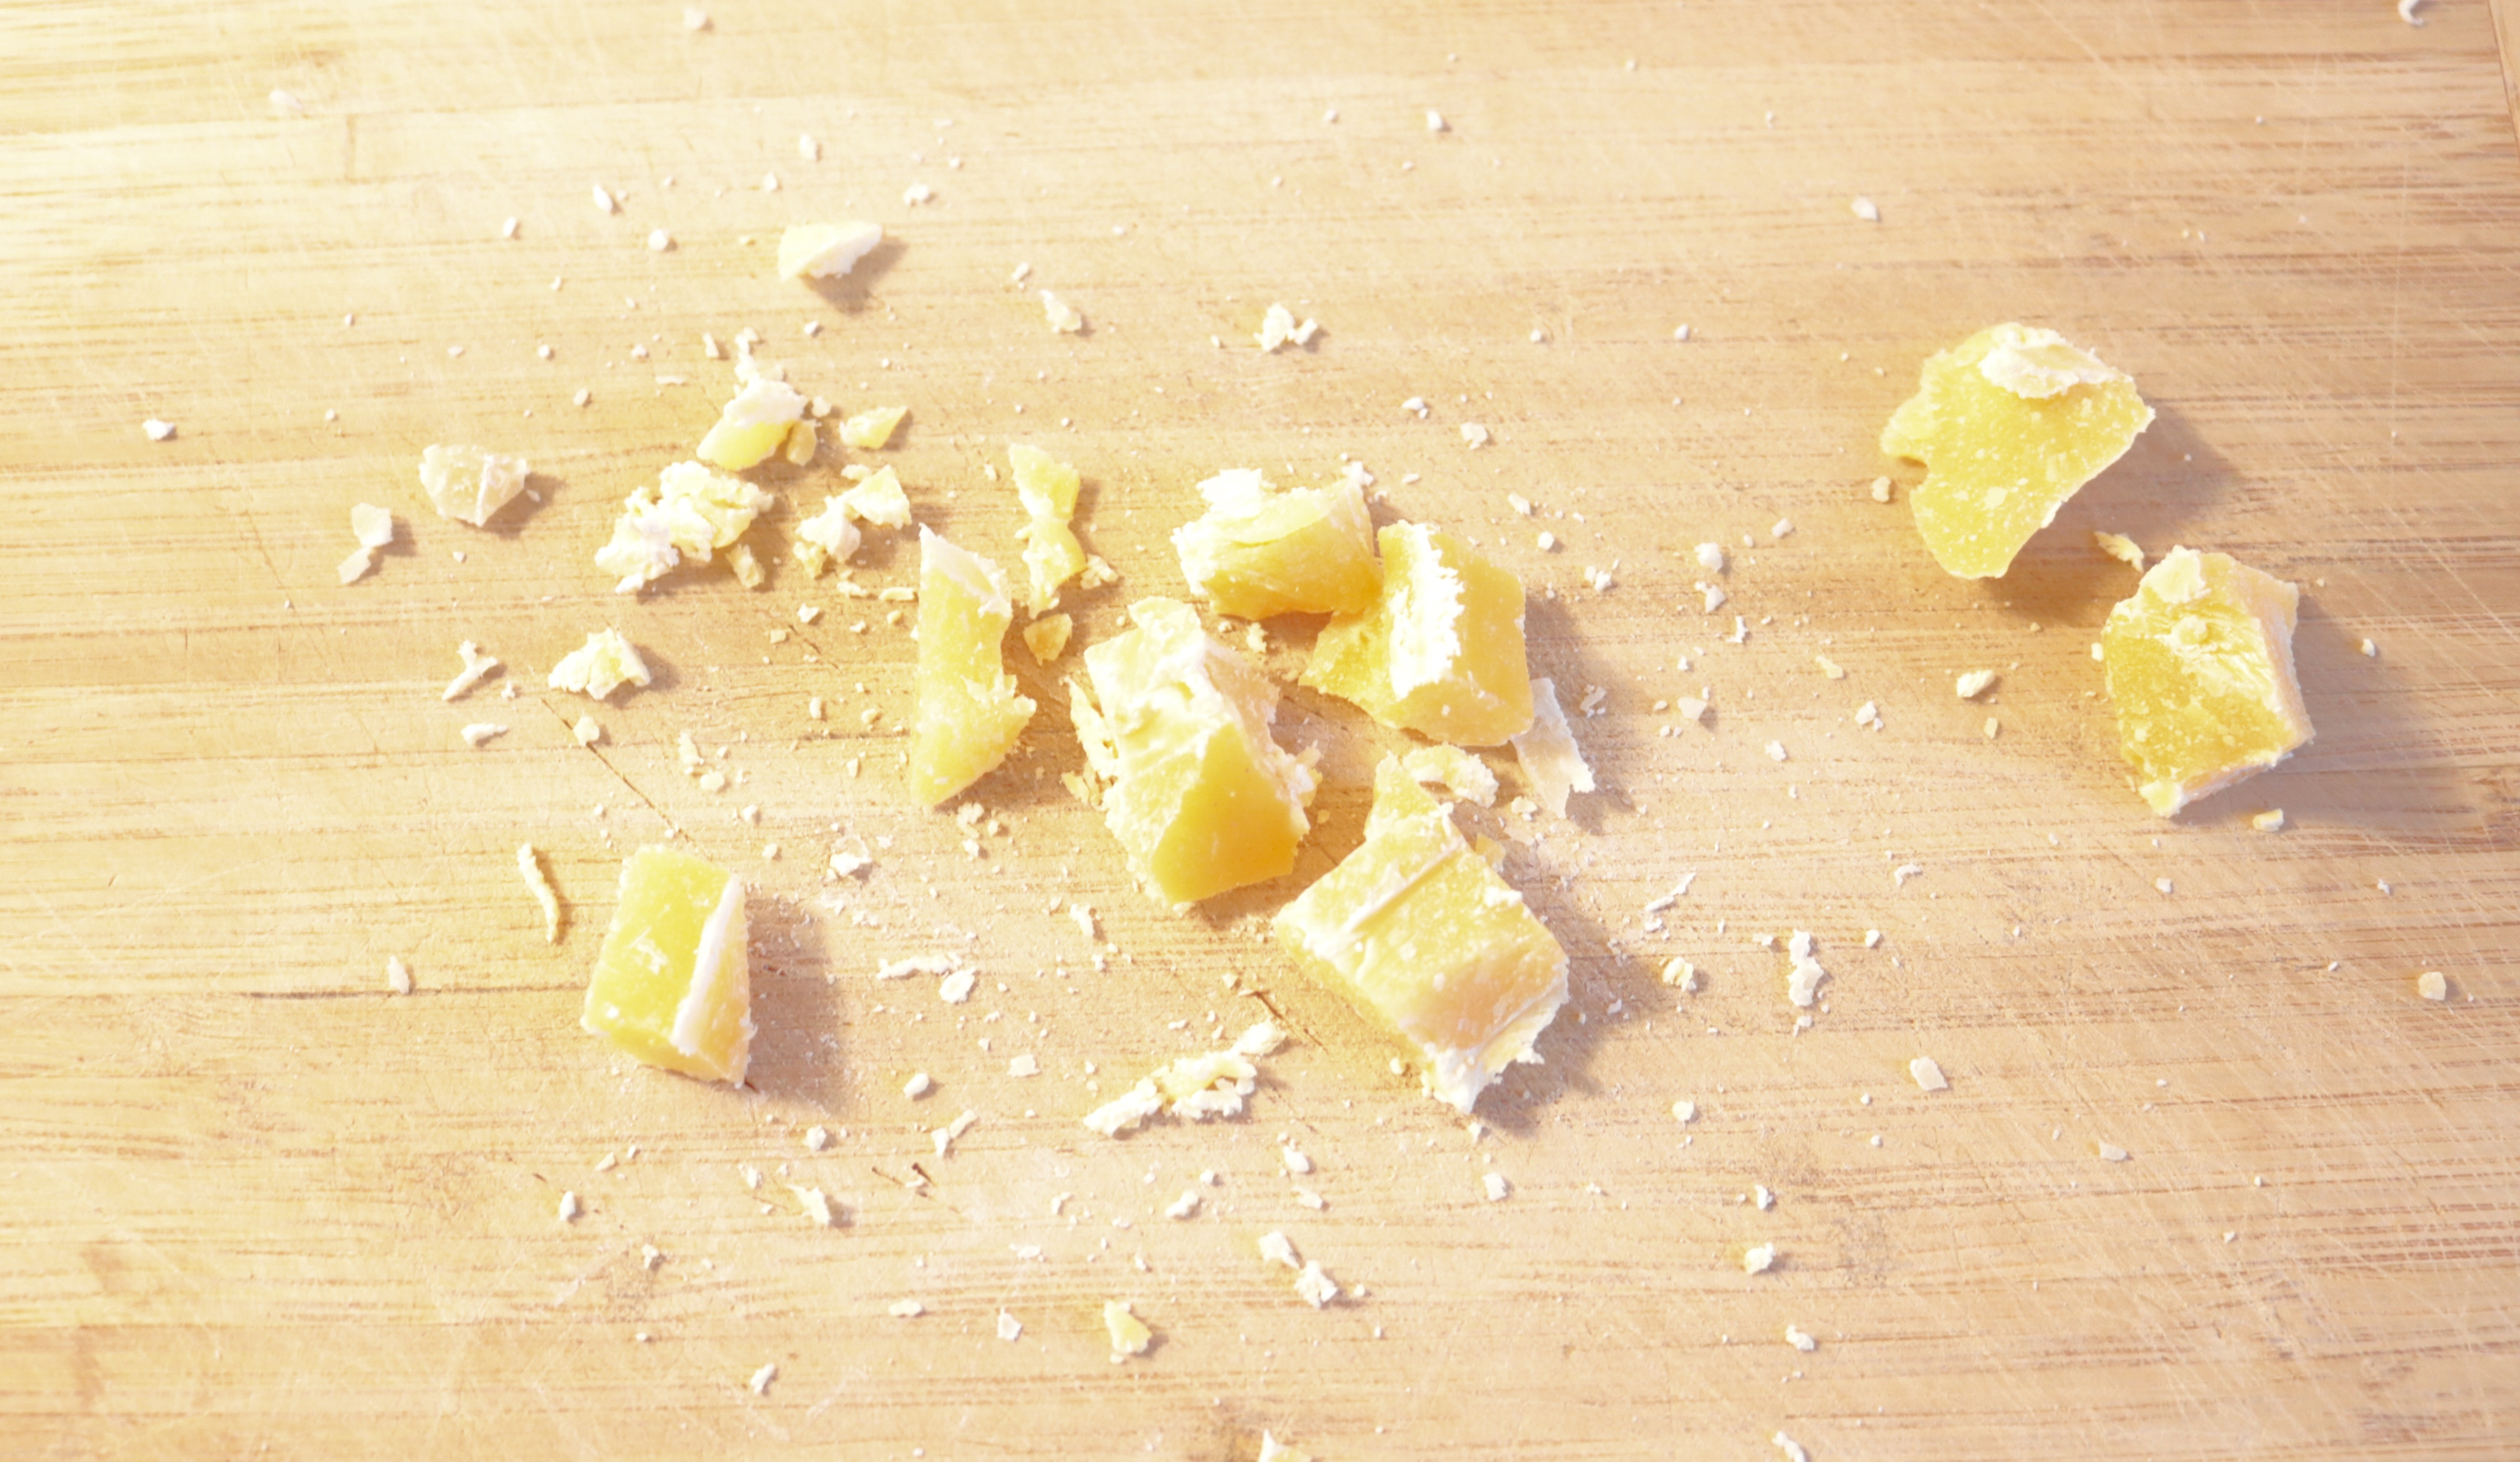 Pieces of crushed bees wax then goes to the warmed up oil for melting.